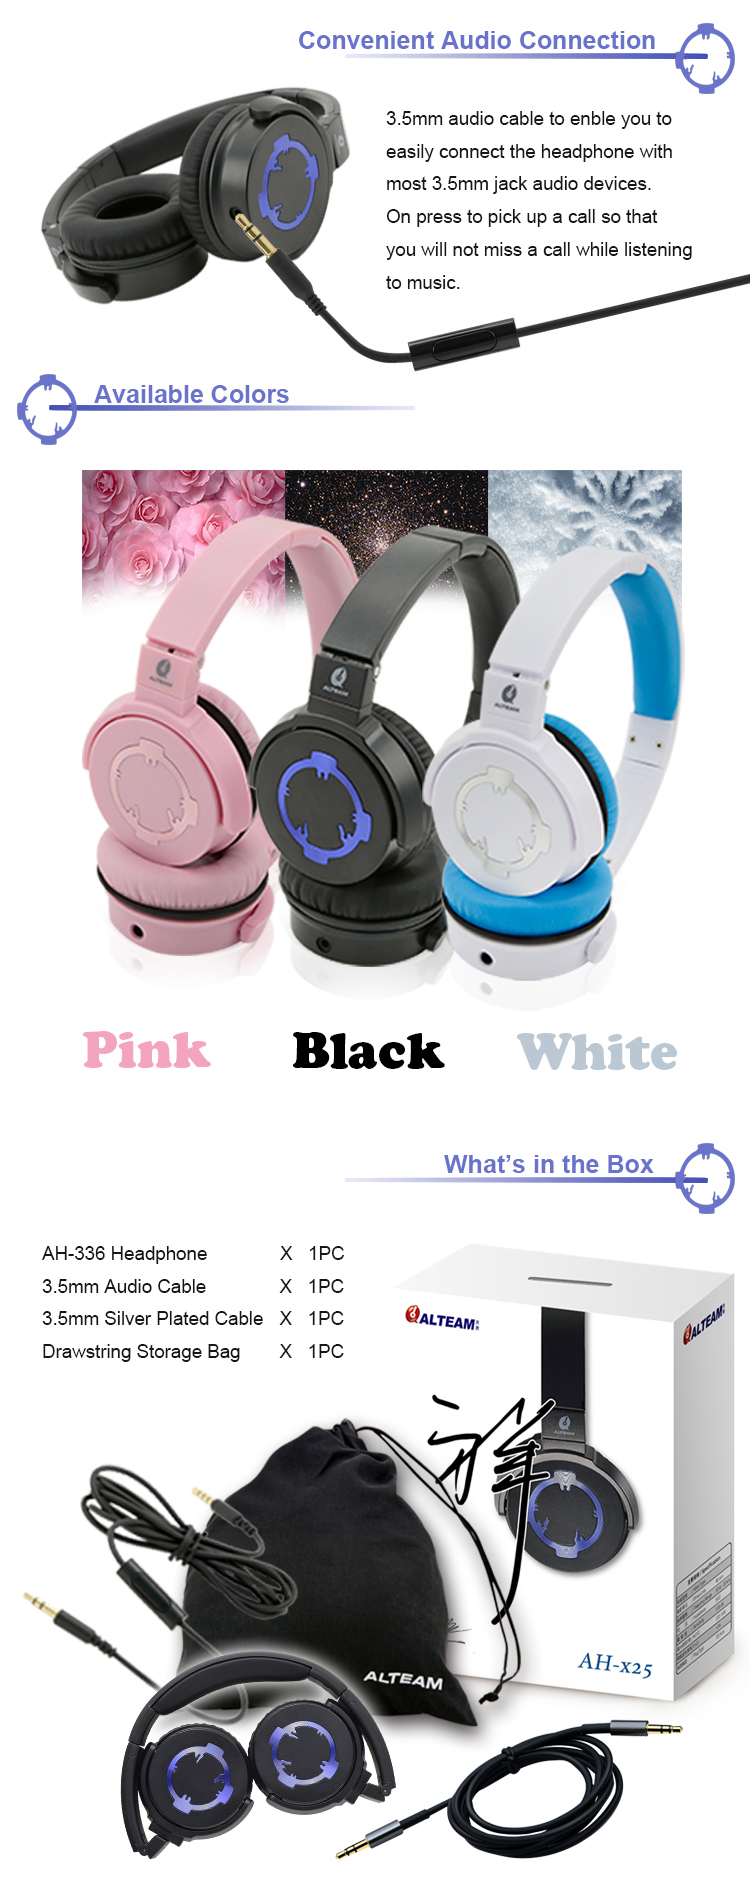 2016 New Foldable Portable Wired Detachable Audio Cable Stereo Deep Bass Music On Ear Headphones with Microphone for ios android